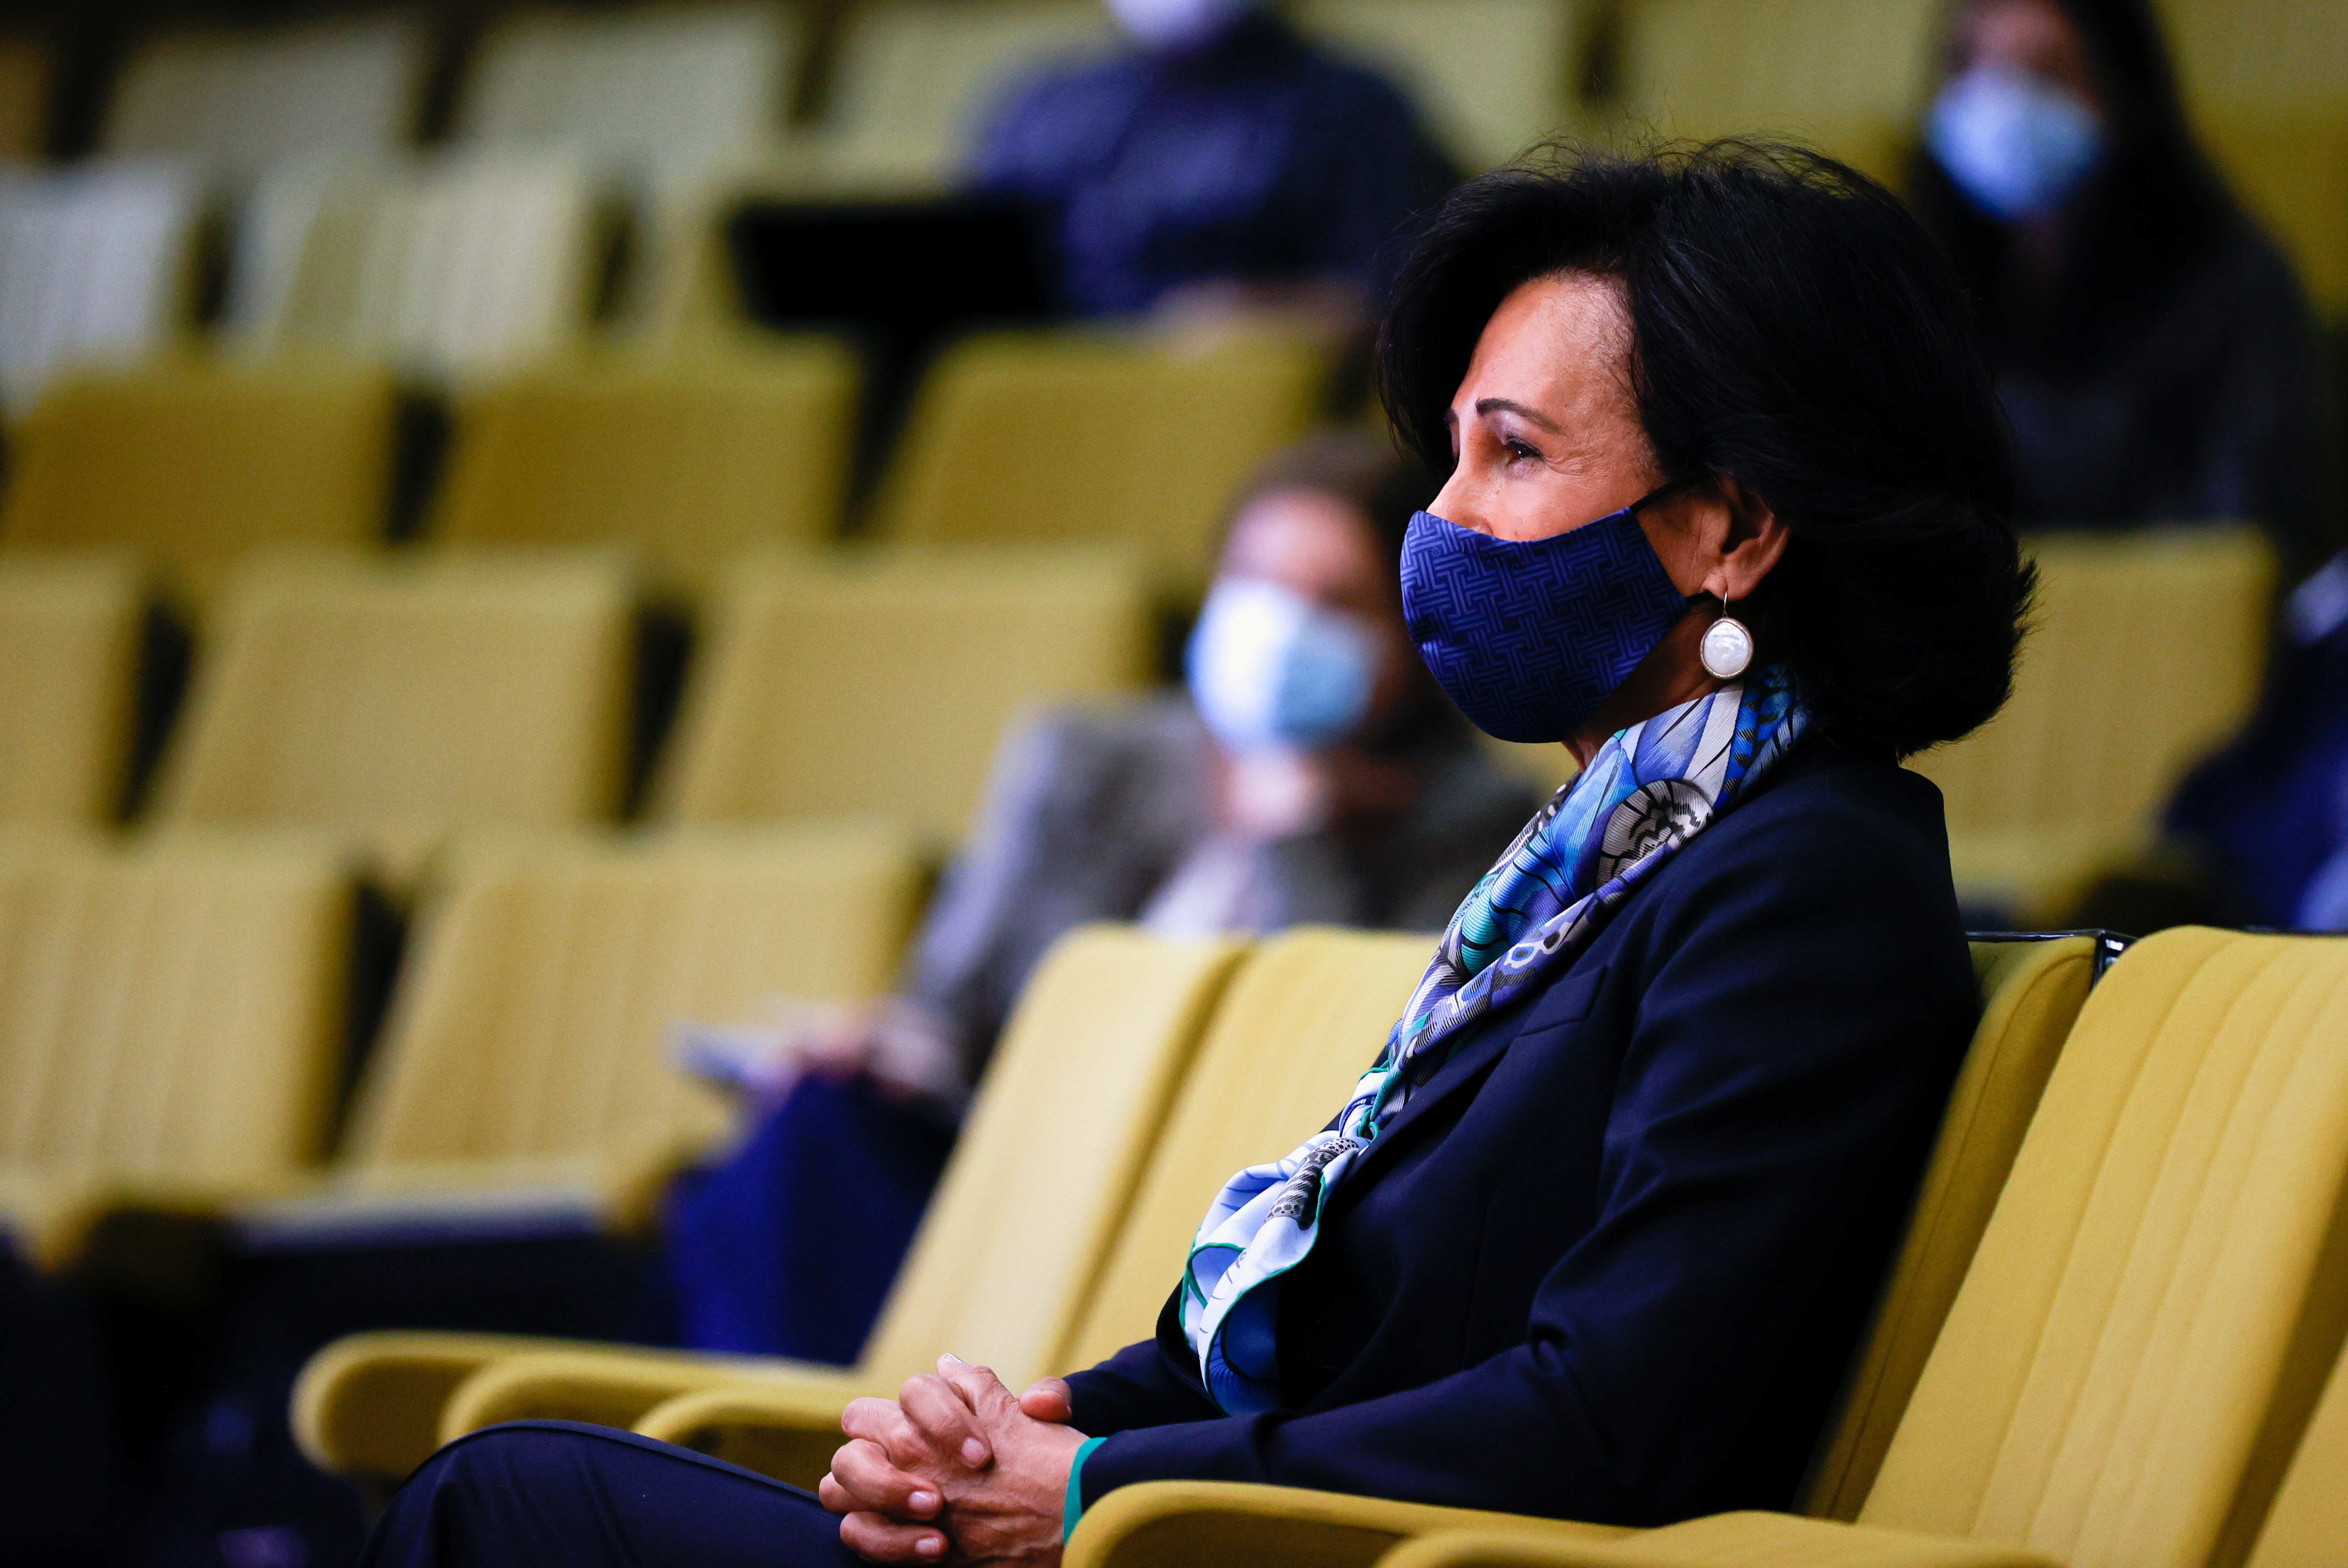 Banco Santander's chairwoman Ana Patricia Botin attends a trial against Santander over the bank's withdrawal of the CEO job offer to Italian banker Andrea Orcel, in a high court in Madrid, Spain, May 19, 2021. REUTERS/Juan Medina